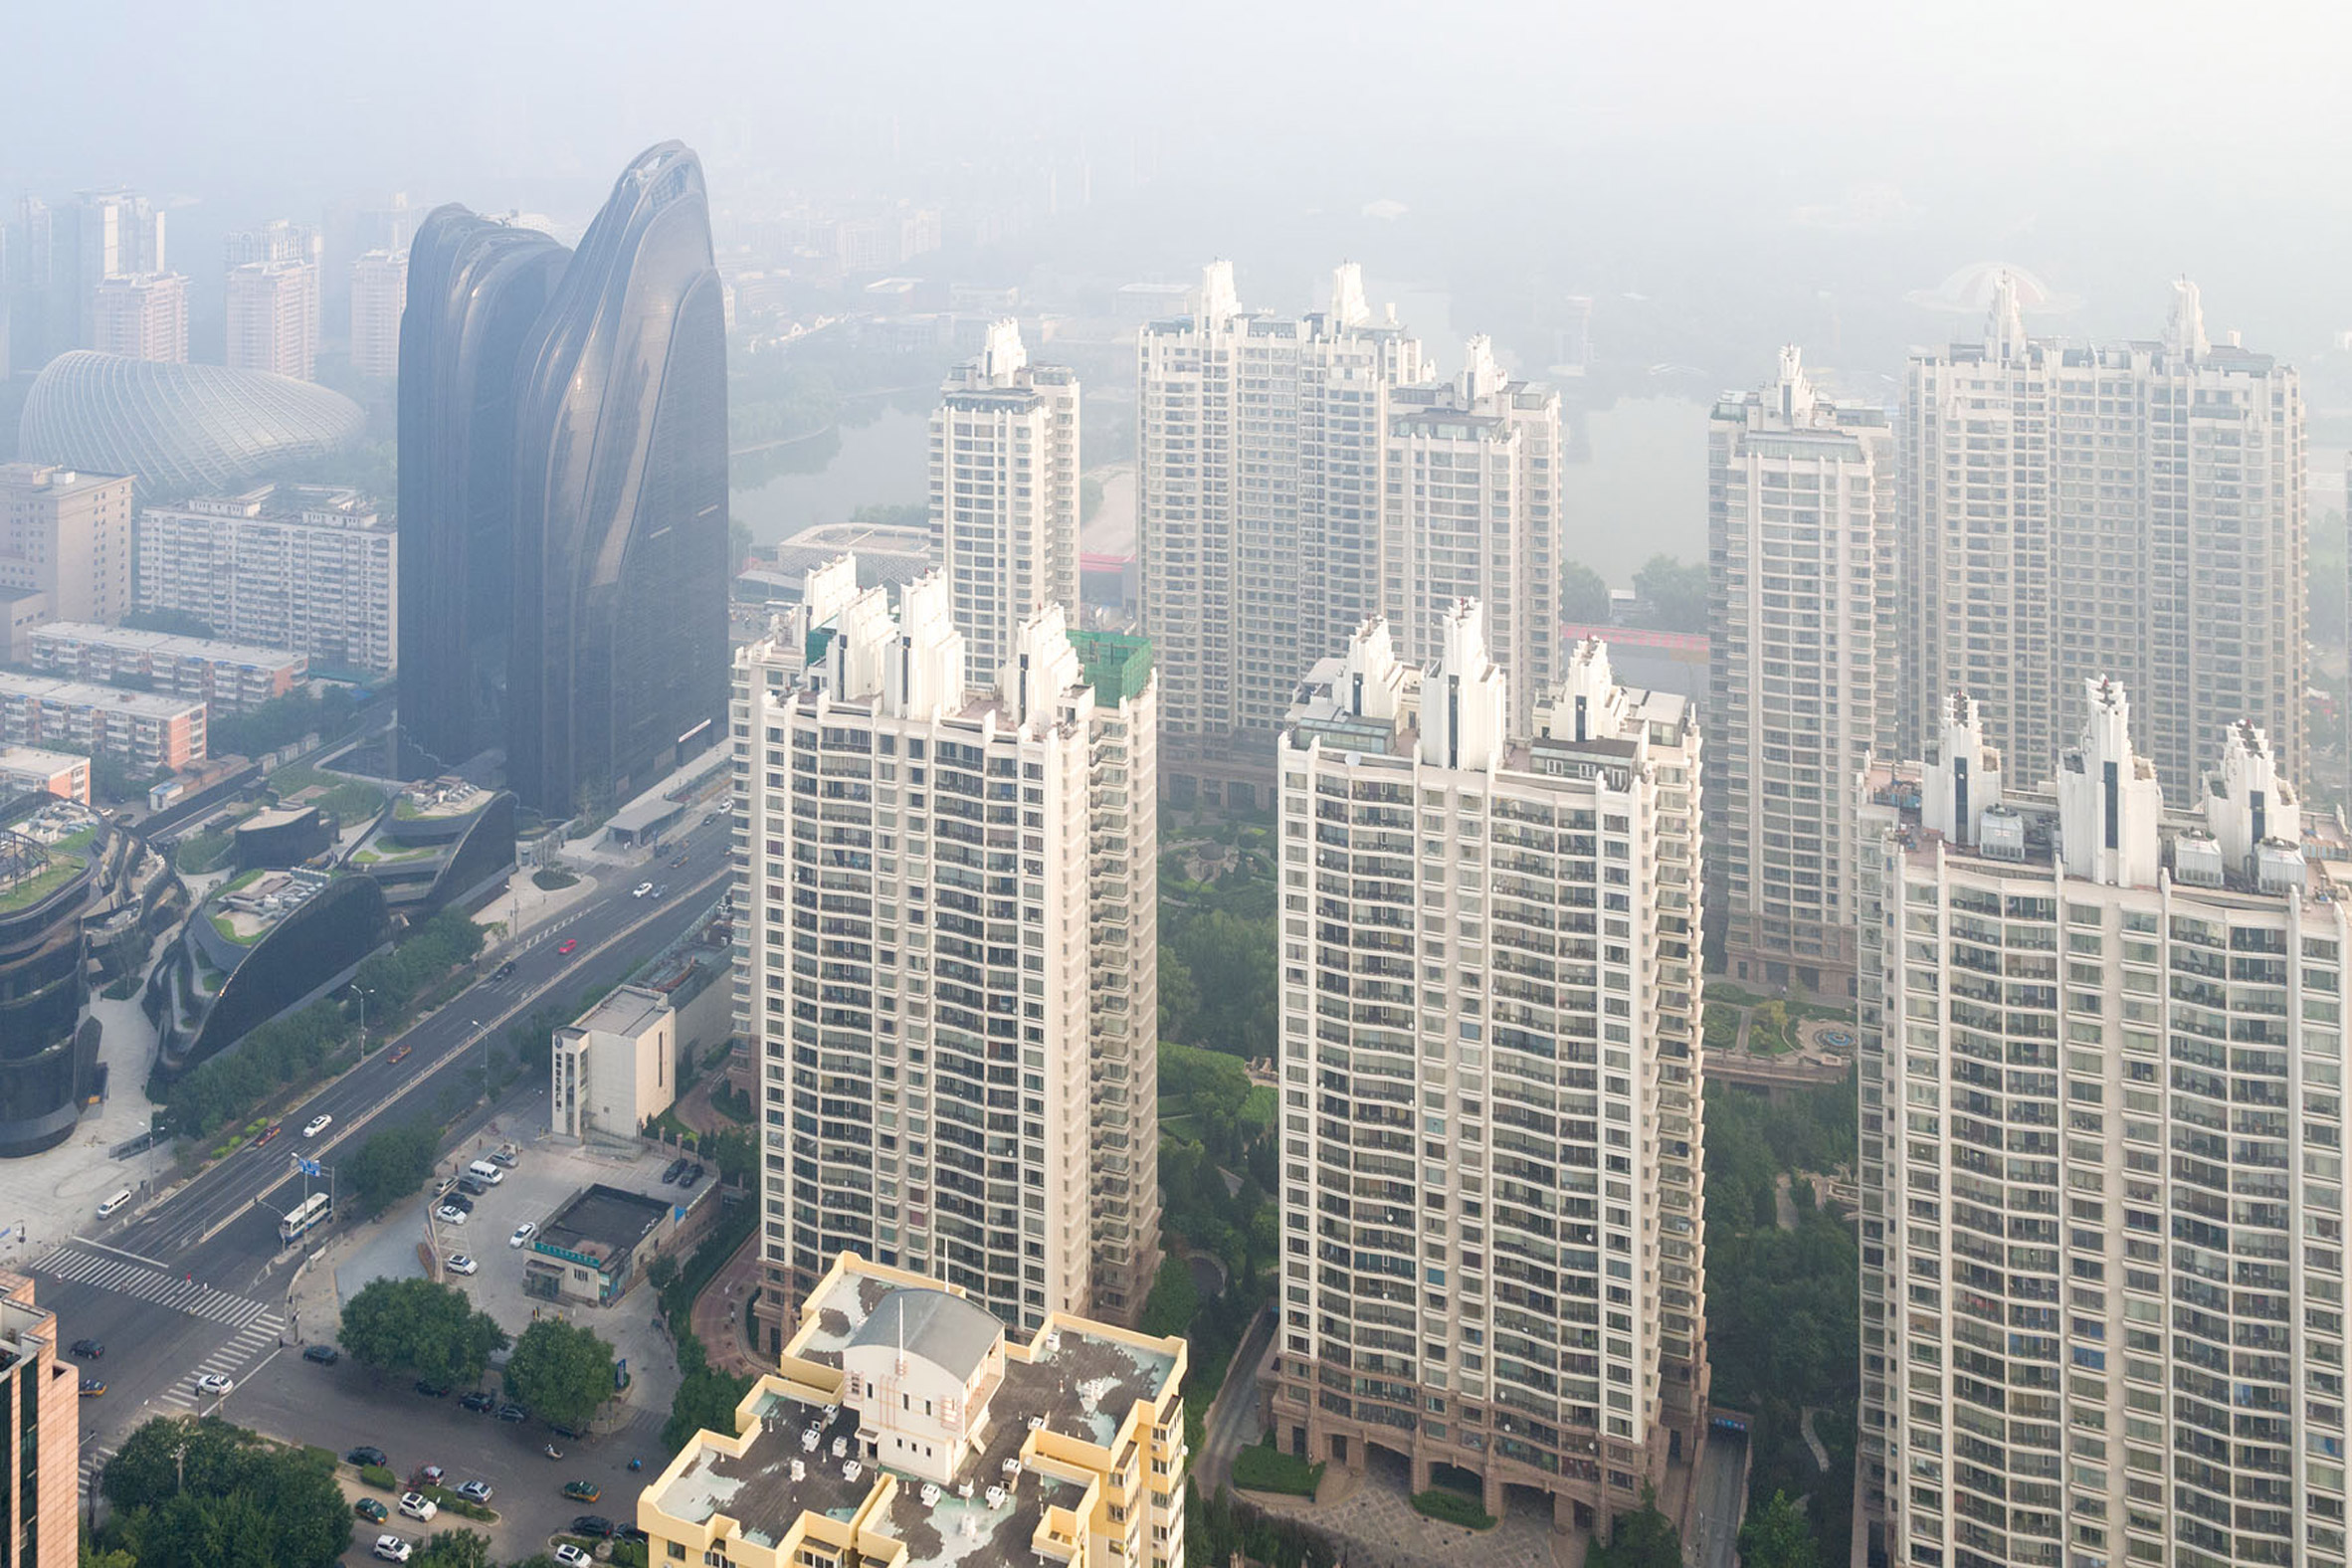 Iwan Baan photographs MAD's Chaoyang Park Plaza in the Beijing haze